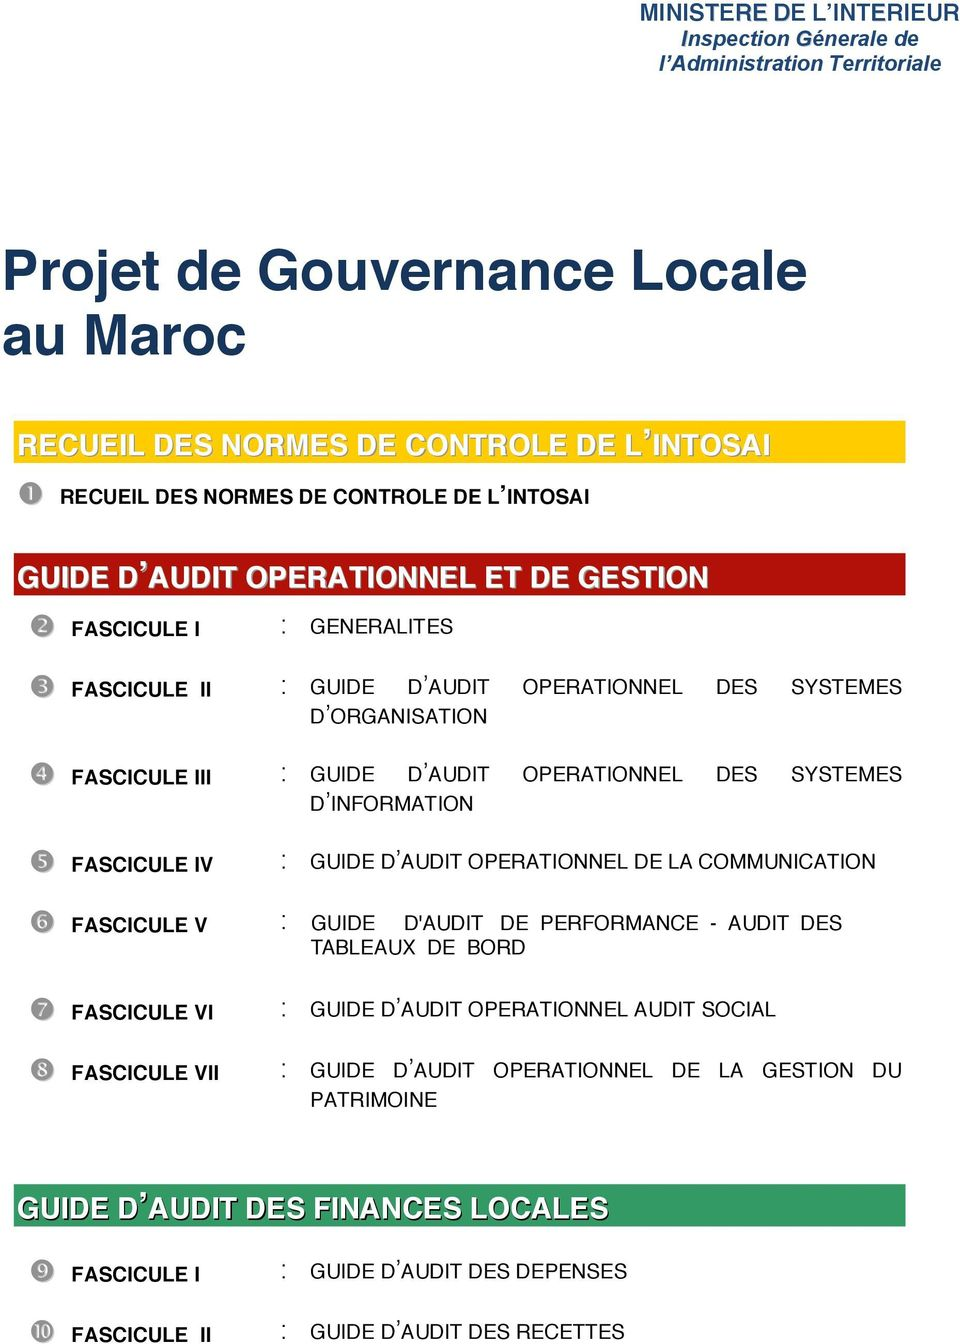 SYSTEMES D'INFORMATION FASCICULE IV : GUIDE D'AUDIT OPERATIONNEL DE LA COMMUNICATION FASCICULE V : GUIDE D'AUDIT DE PERFORMANCE - AUDIT DES TABLEAUX DE BORD FASCICULE VI : GUIDE D'AUDIT